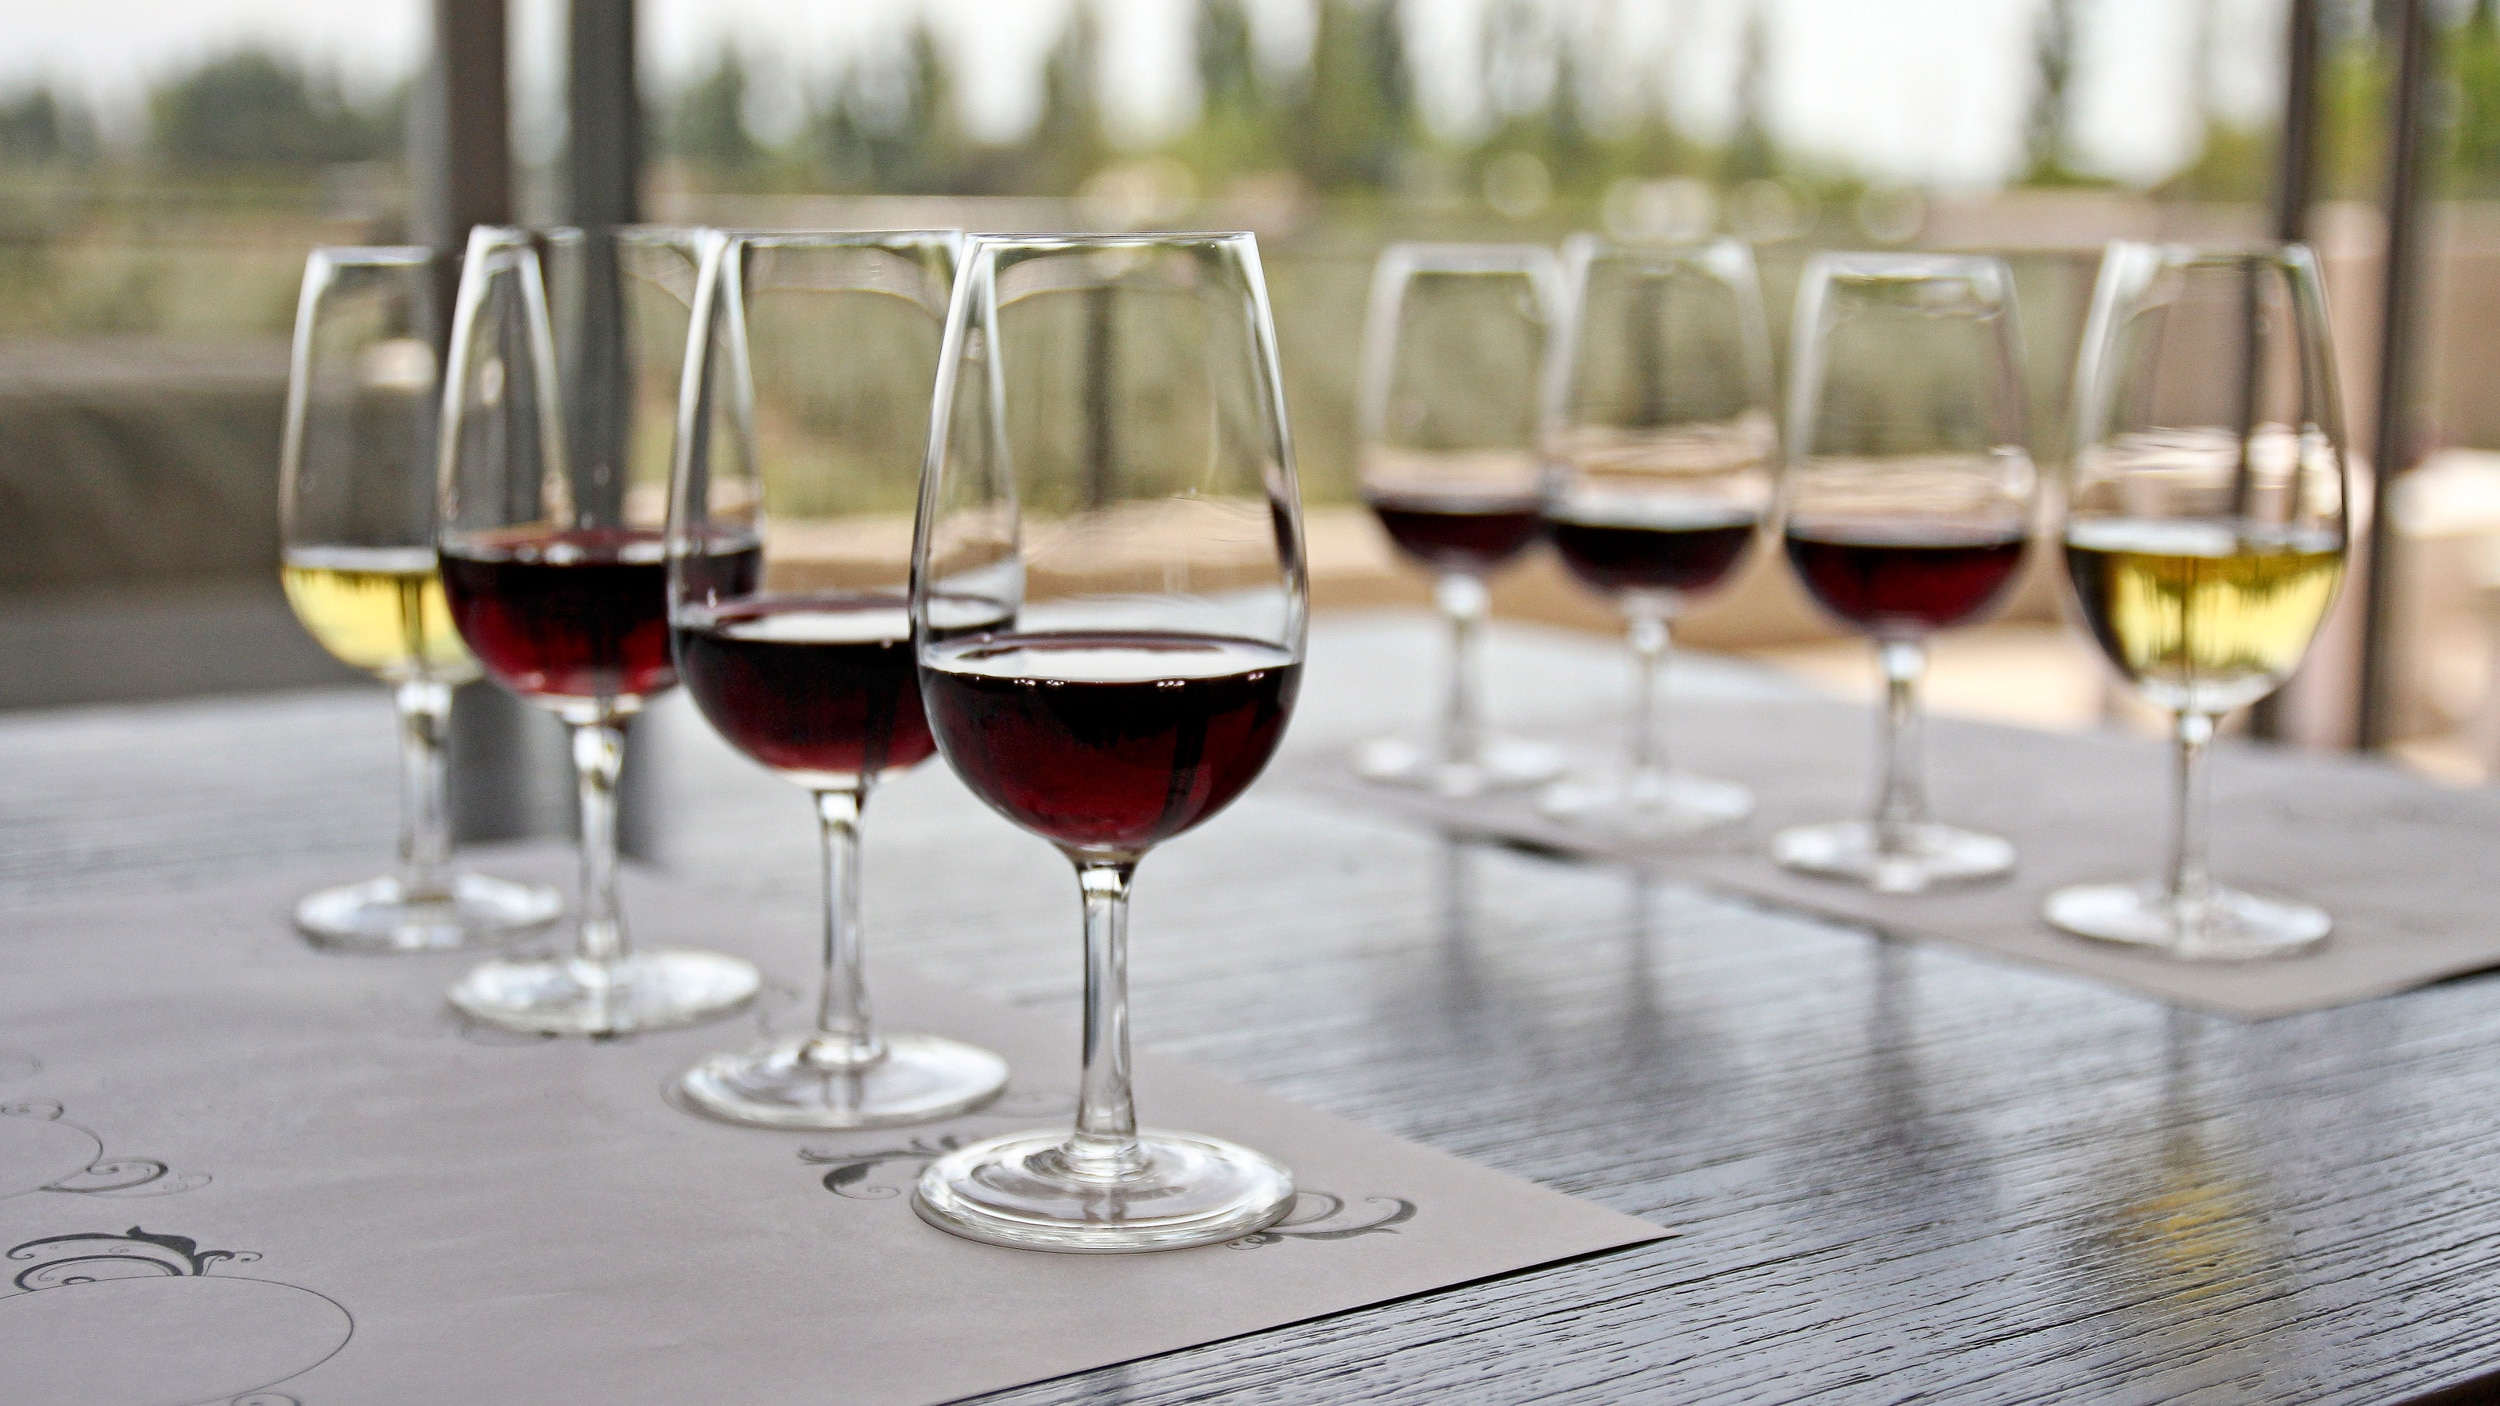 Glasses lined-up and filled with wine for wine tasting at winery, Maipu, Mendoza, Argentina.